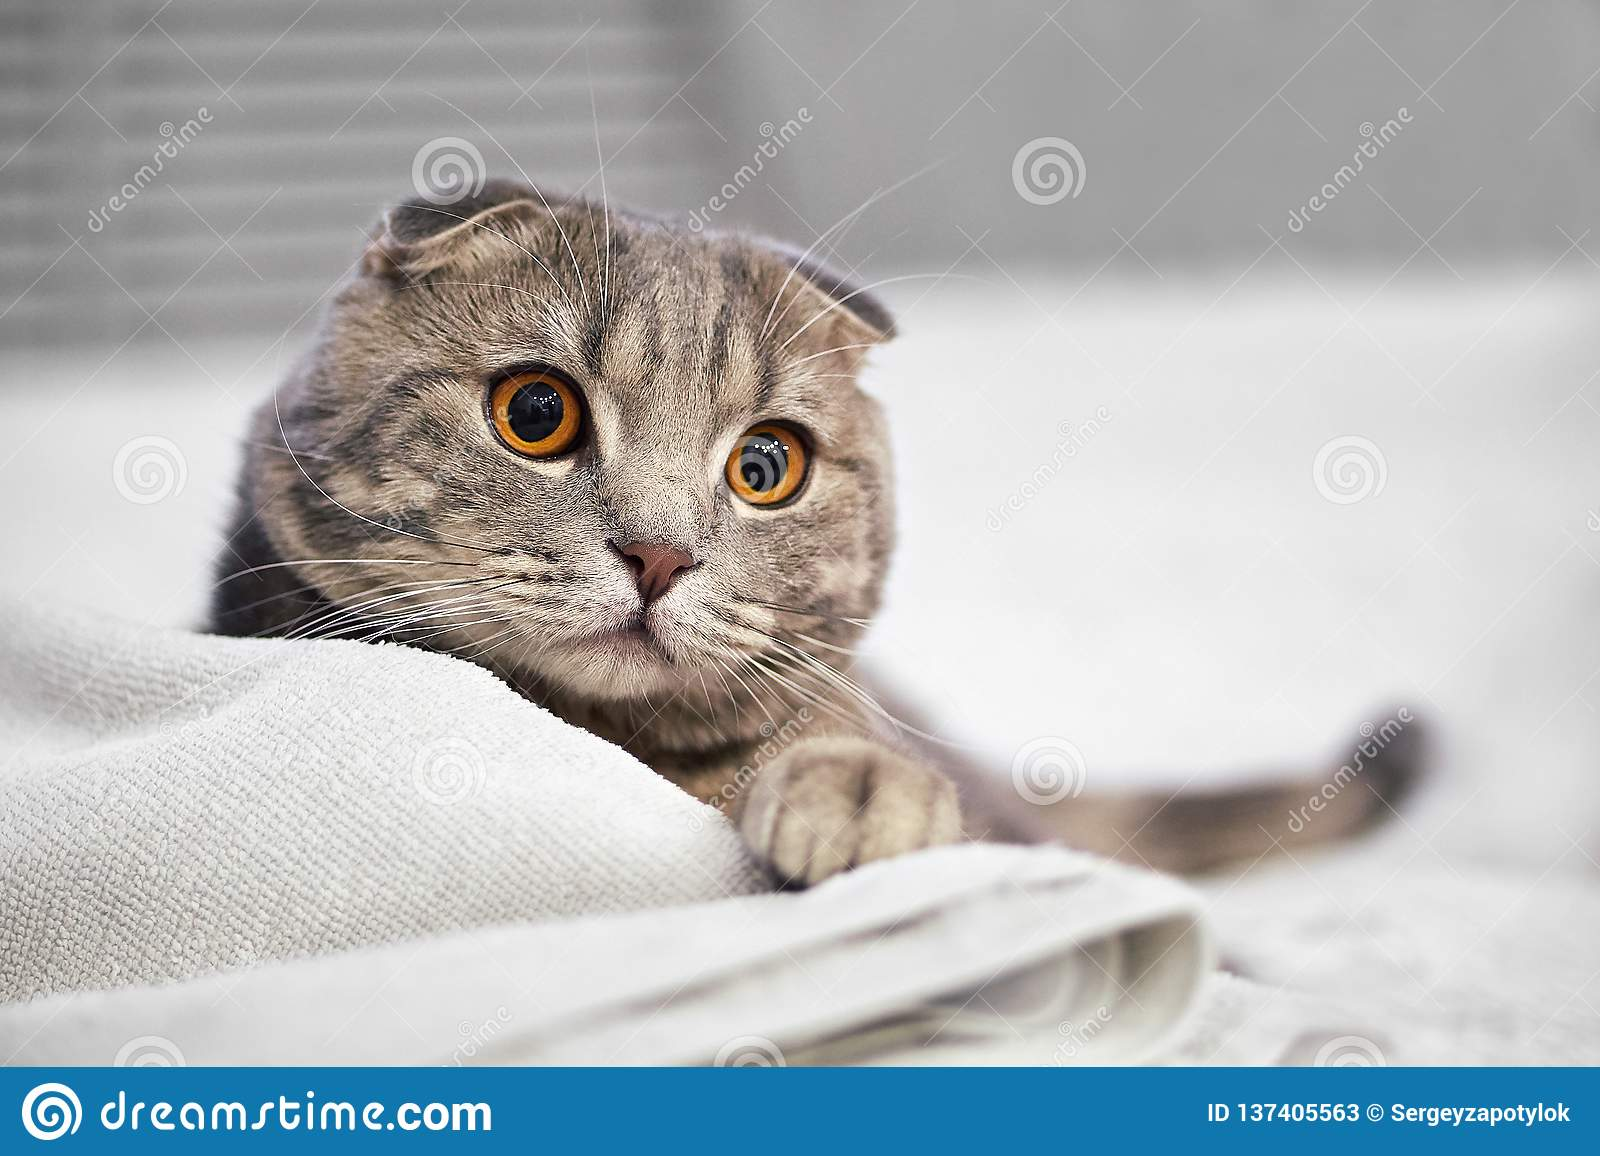 Adorable grey scottish fold tabby cat are squat on white bed in the room